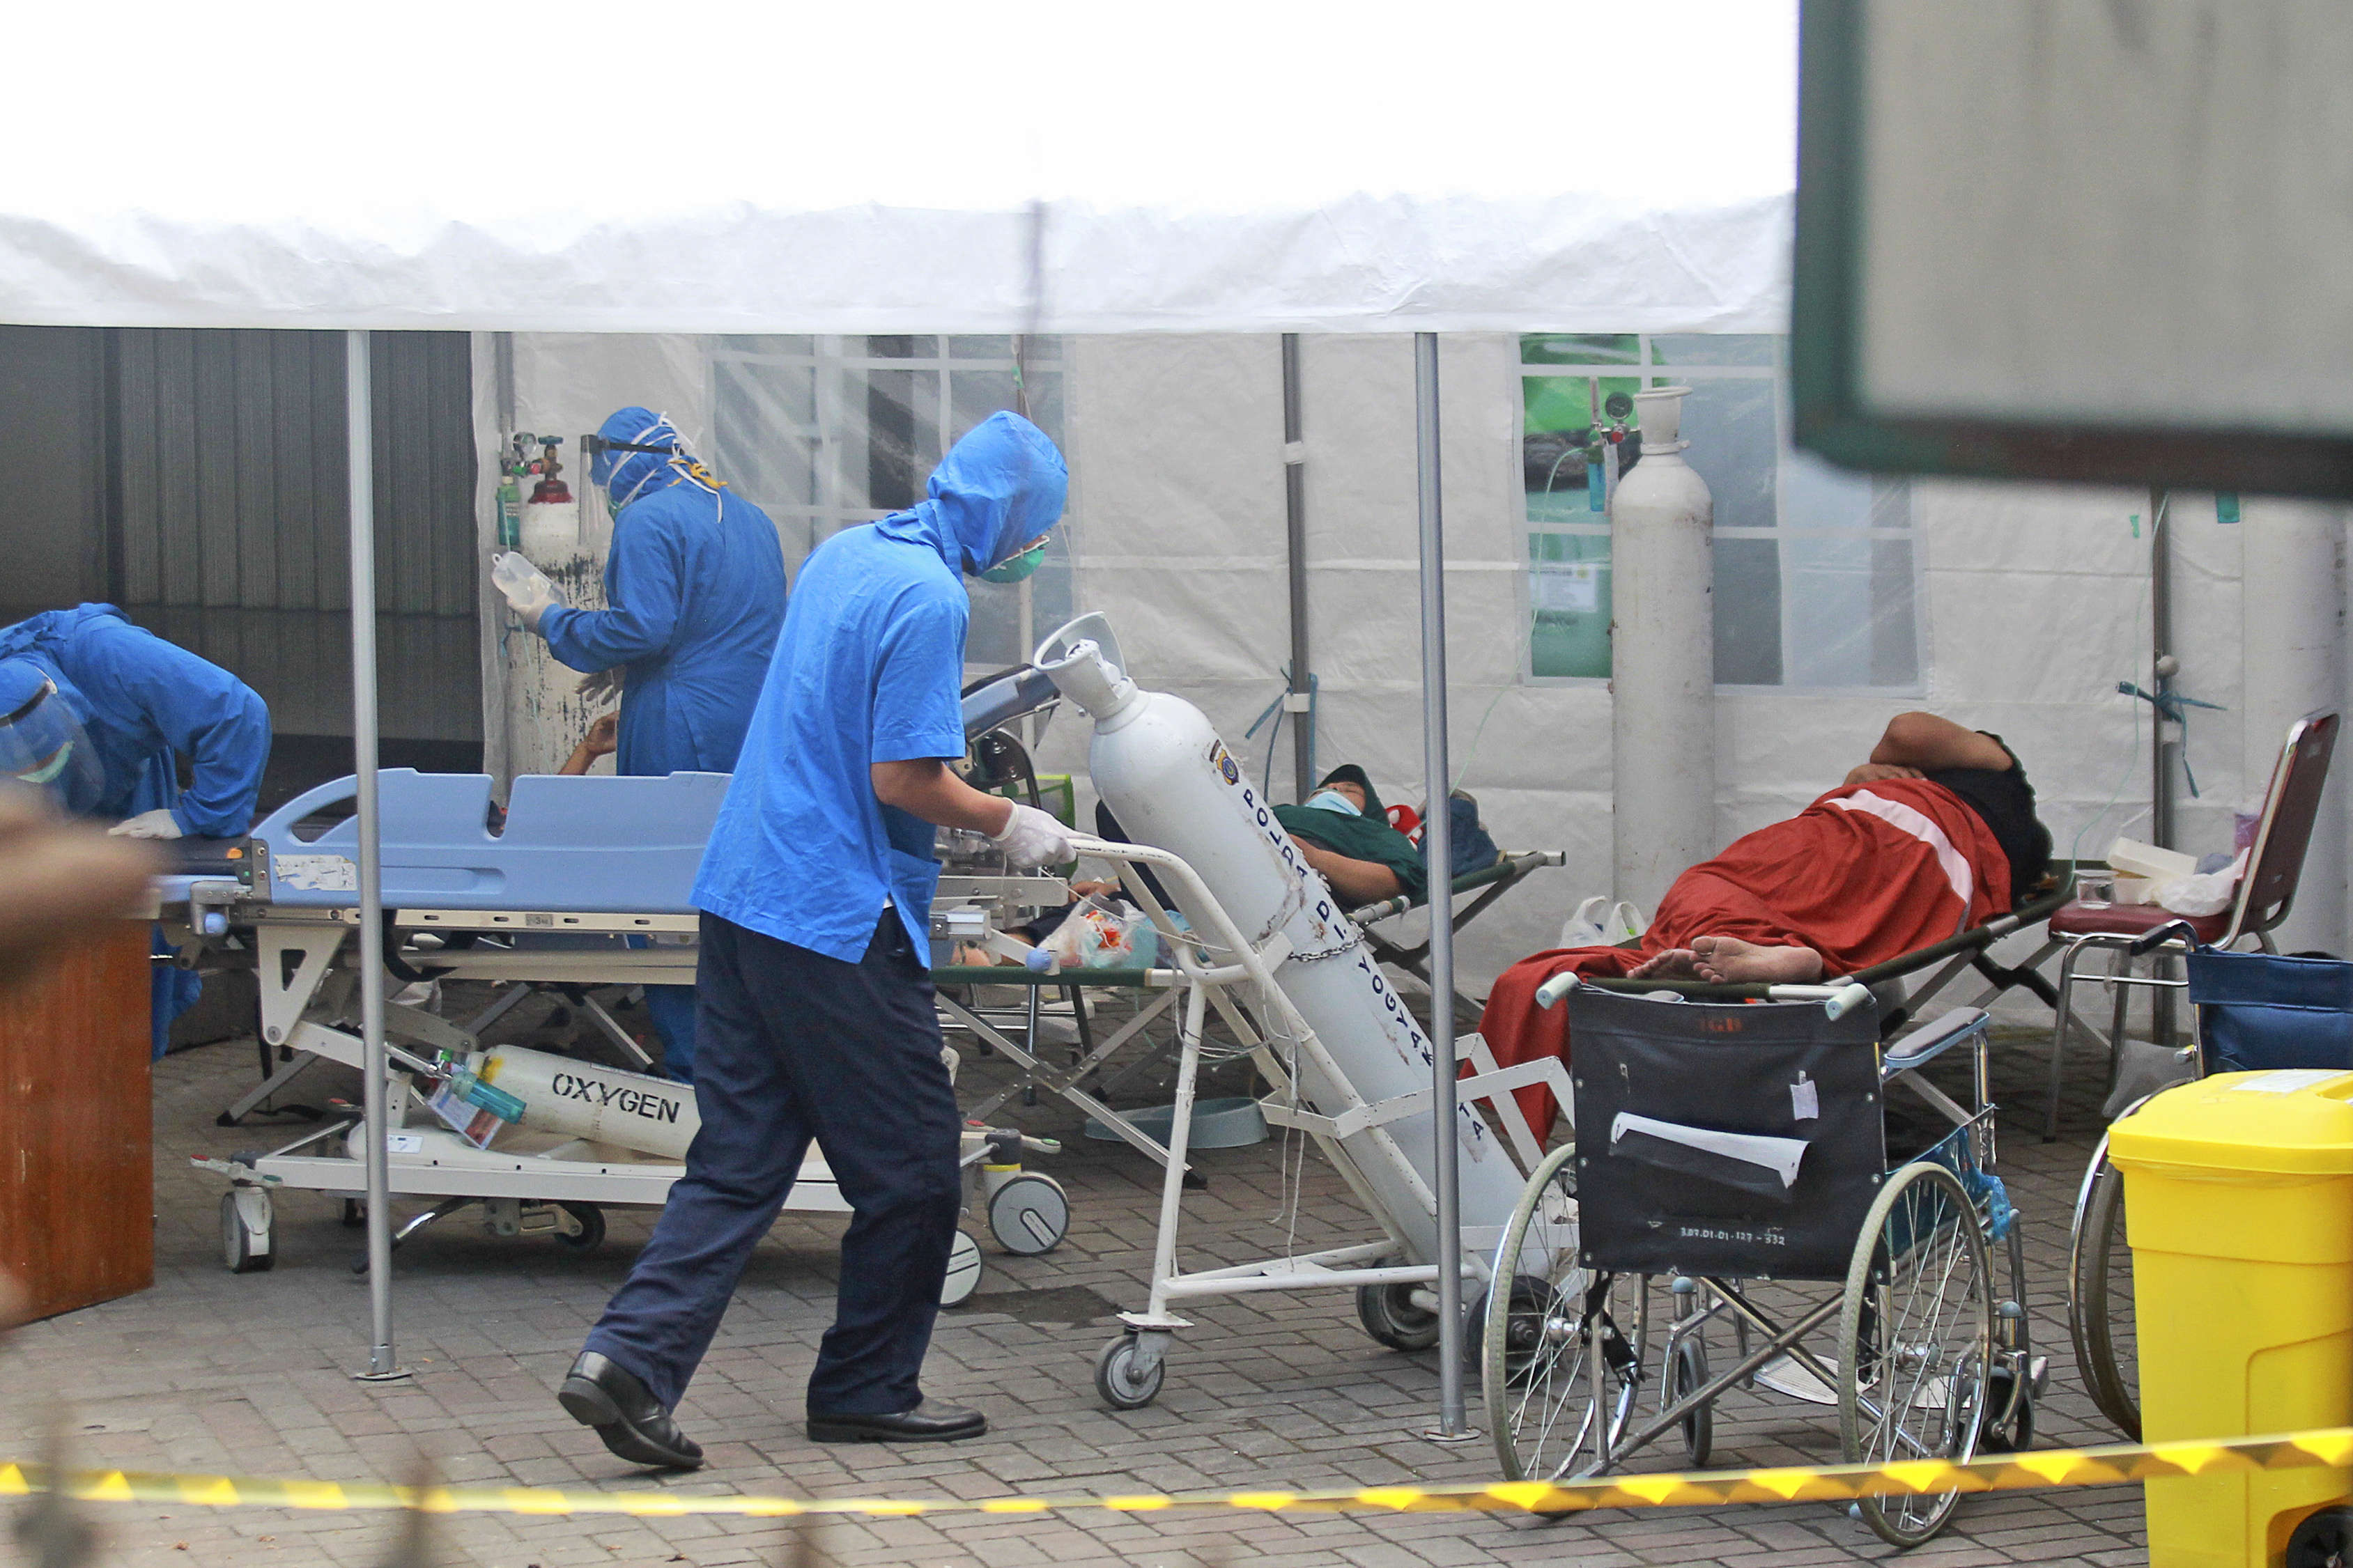 Indonesia short on oxygen, seeks help as virus cases soar - Times of India